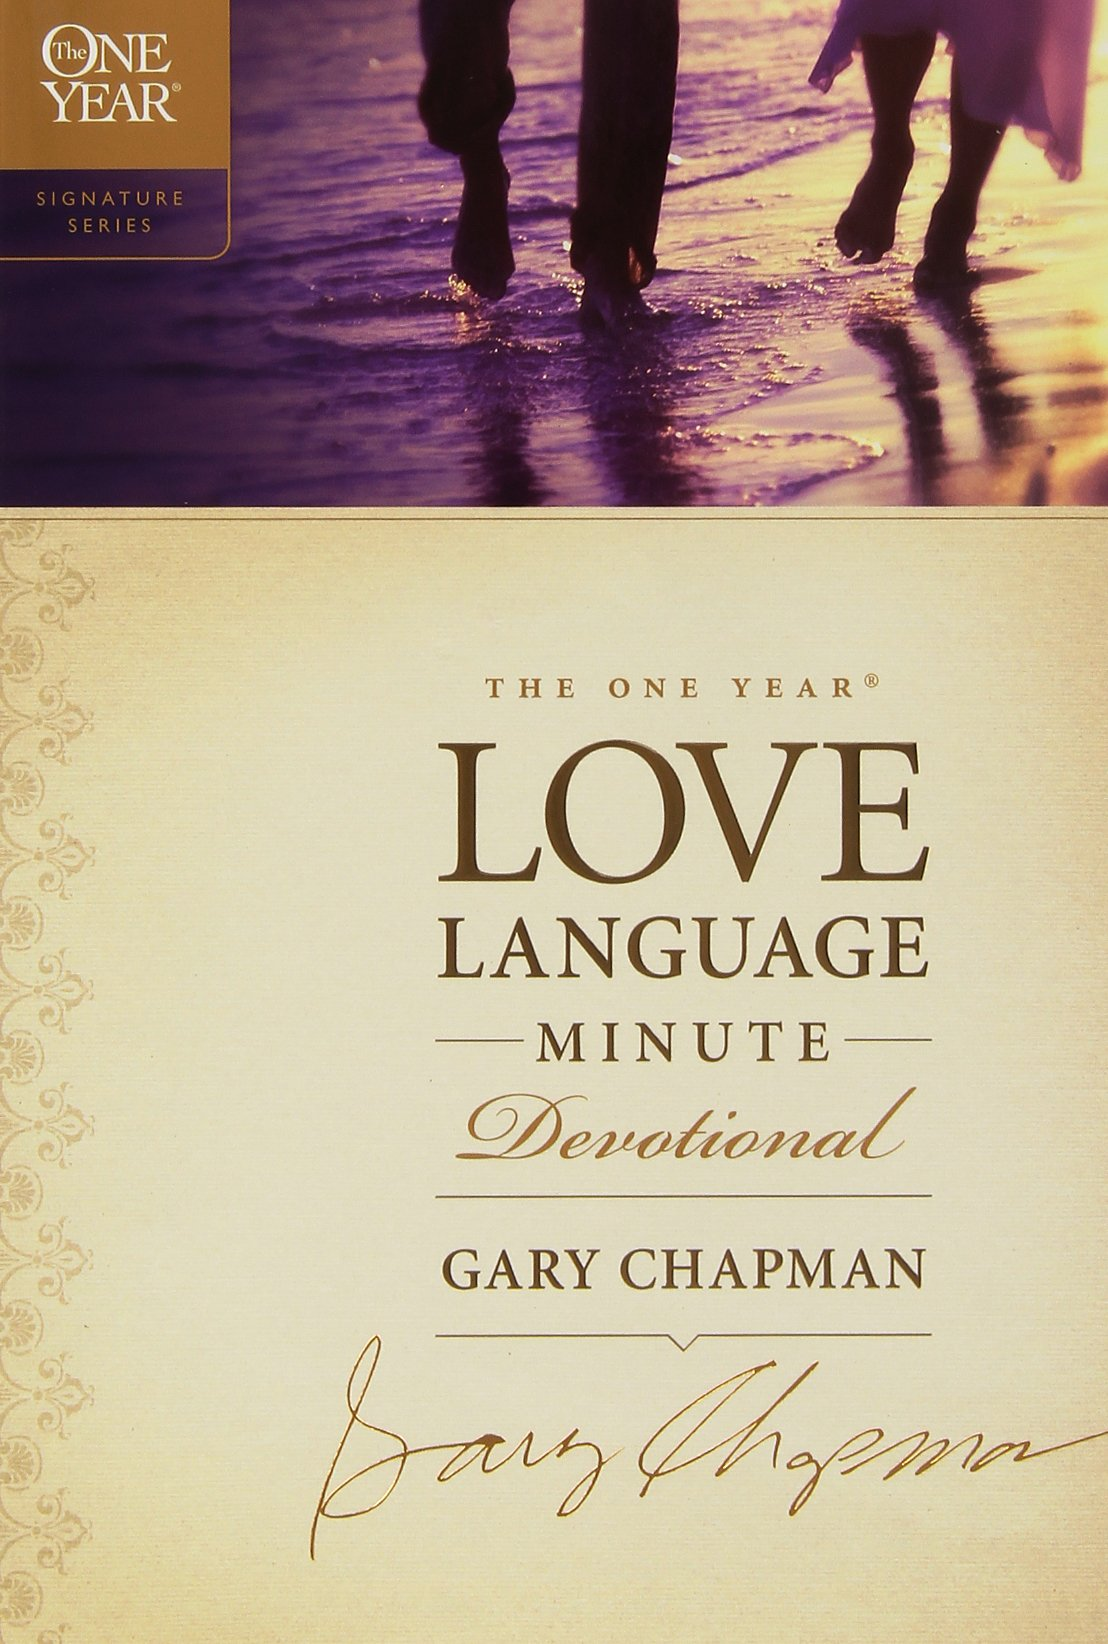 Best devotional books for couples